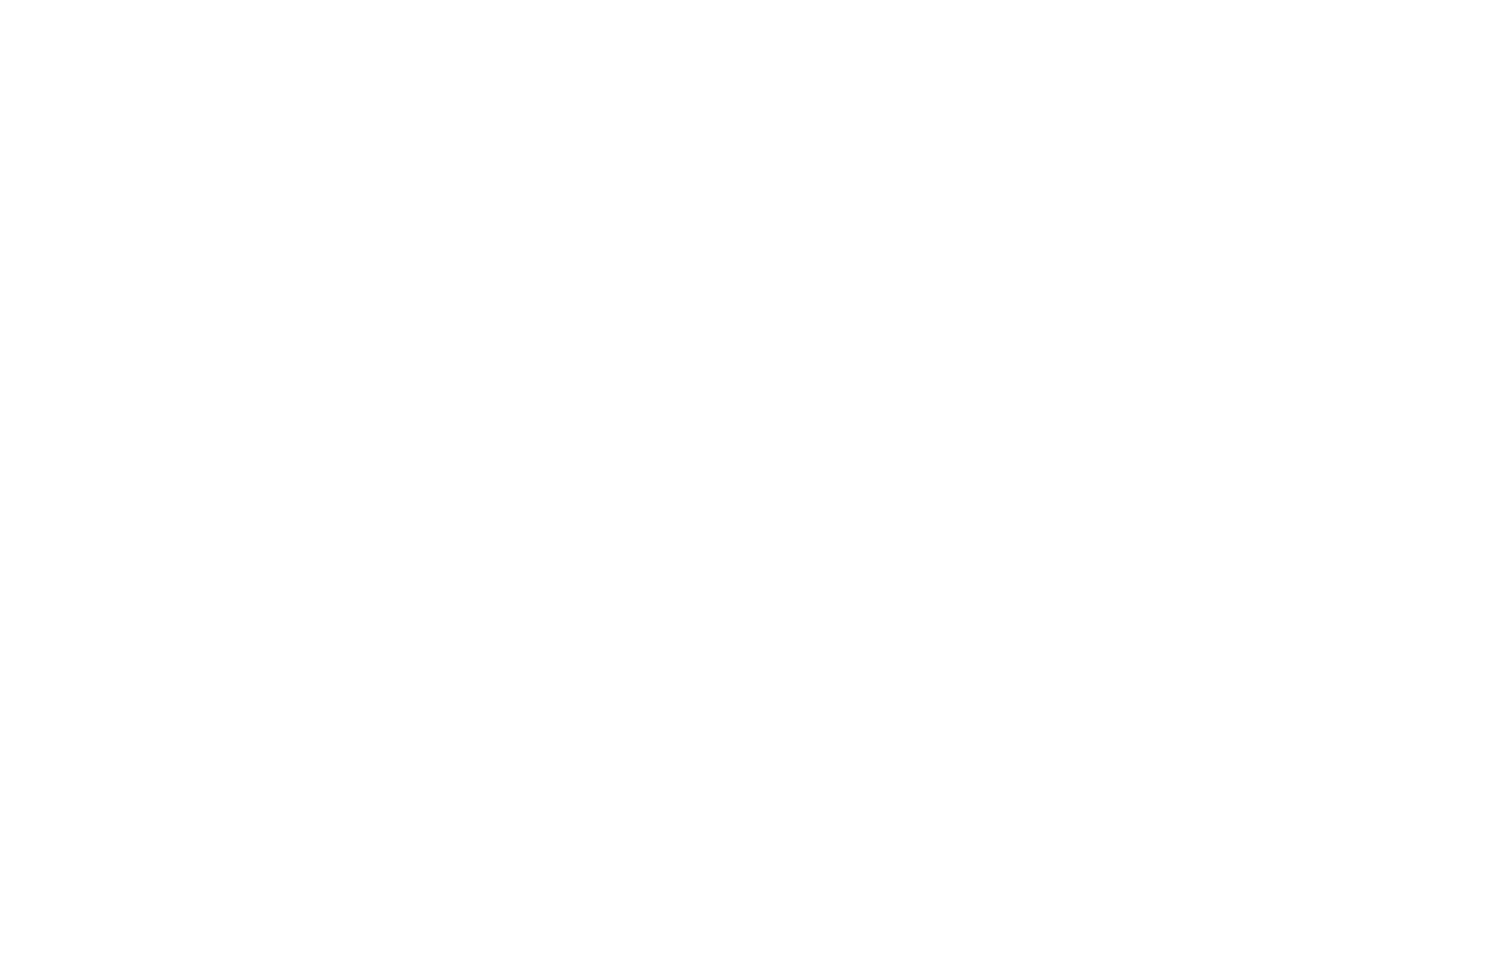 UNDRCARD Boxing Studio - Voted Calgary's Top Boxing Studio